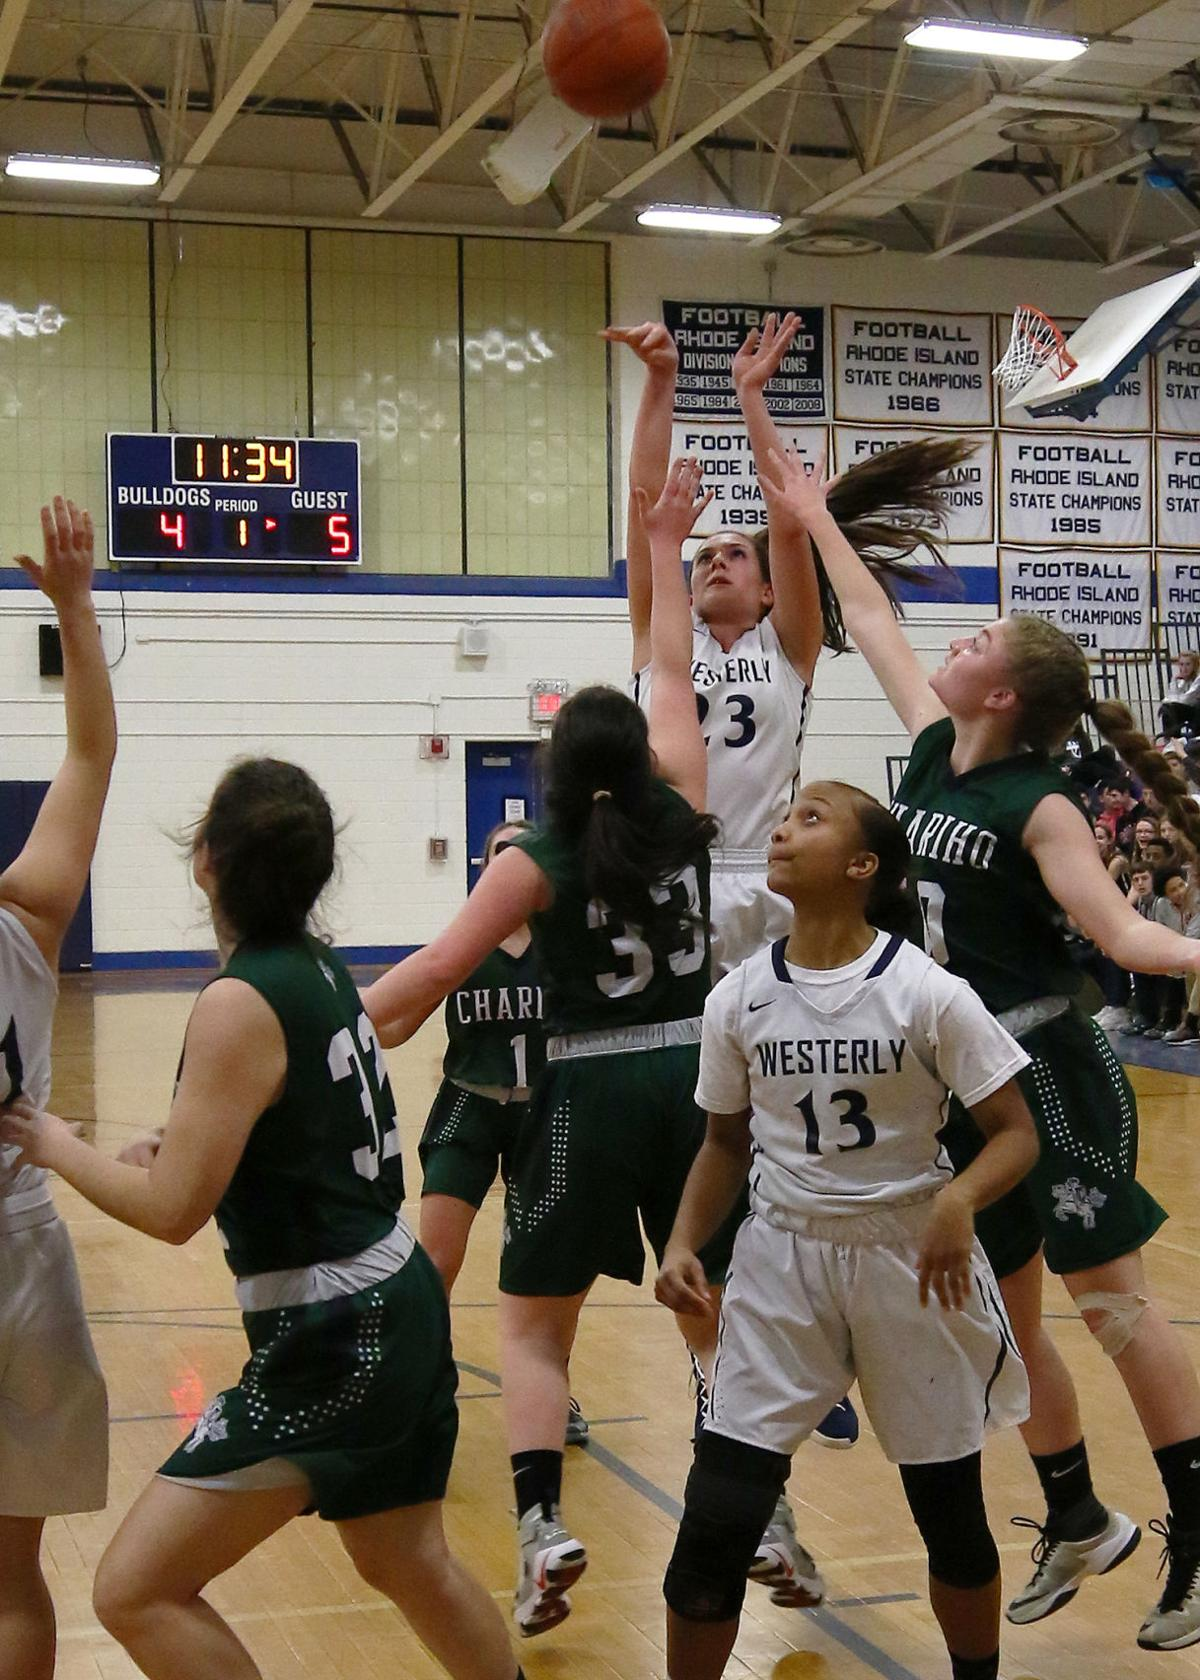 Westerly's Megan Albamonti (23) shoots from just outside while teammate Isis Hamelin (13) looks on. The Westerly Bulldogs girls' varsity basketball team took on the Chariho Chargers on Wednesday evening, February 20th, 2019, at Westerly High School. The evening's game was the last in the girls' Division II regular season. | Jackie L. Turner, Special to The Sun.